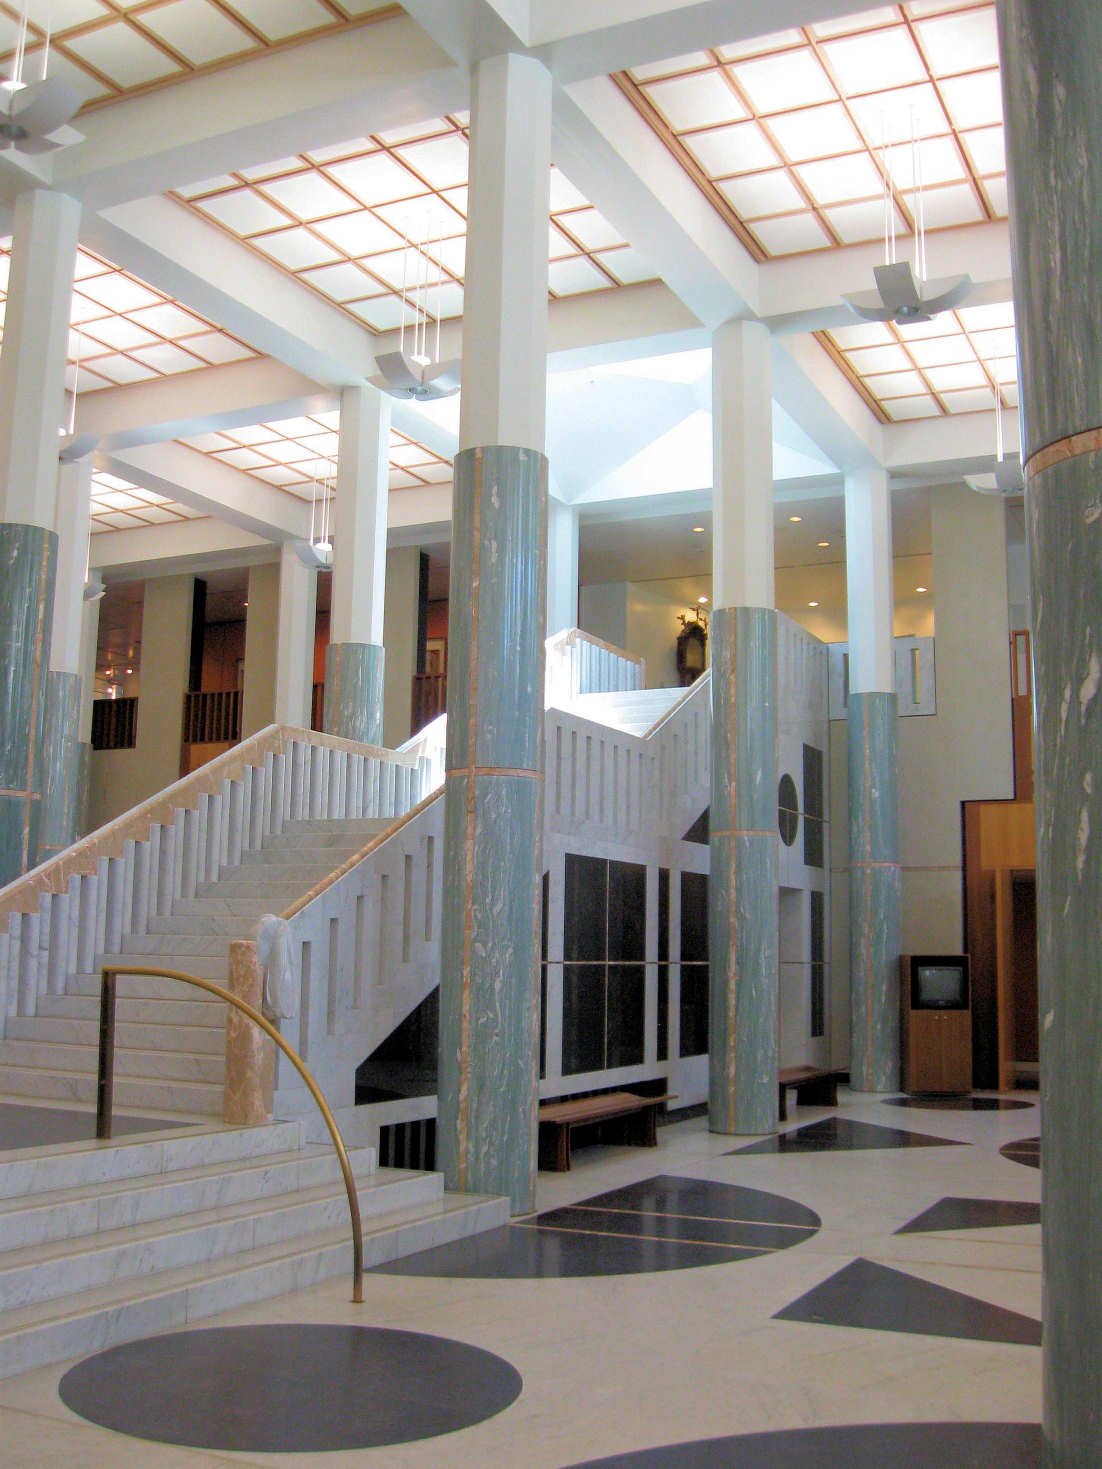 Parliament House Marble Foyer : Canberra parliament house our walks